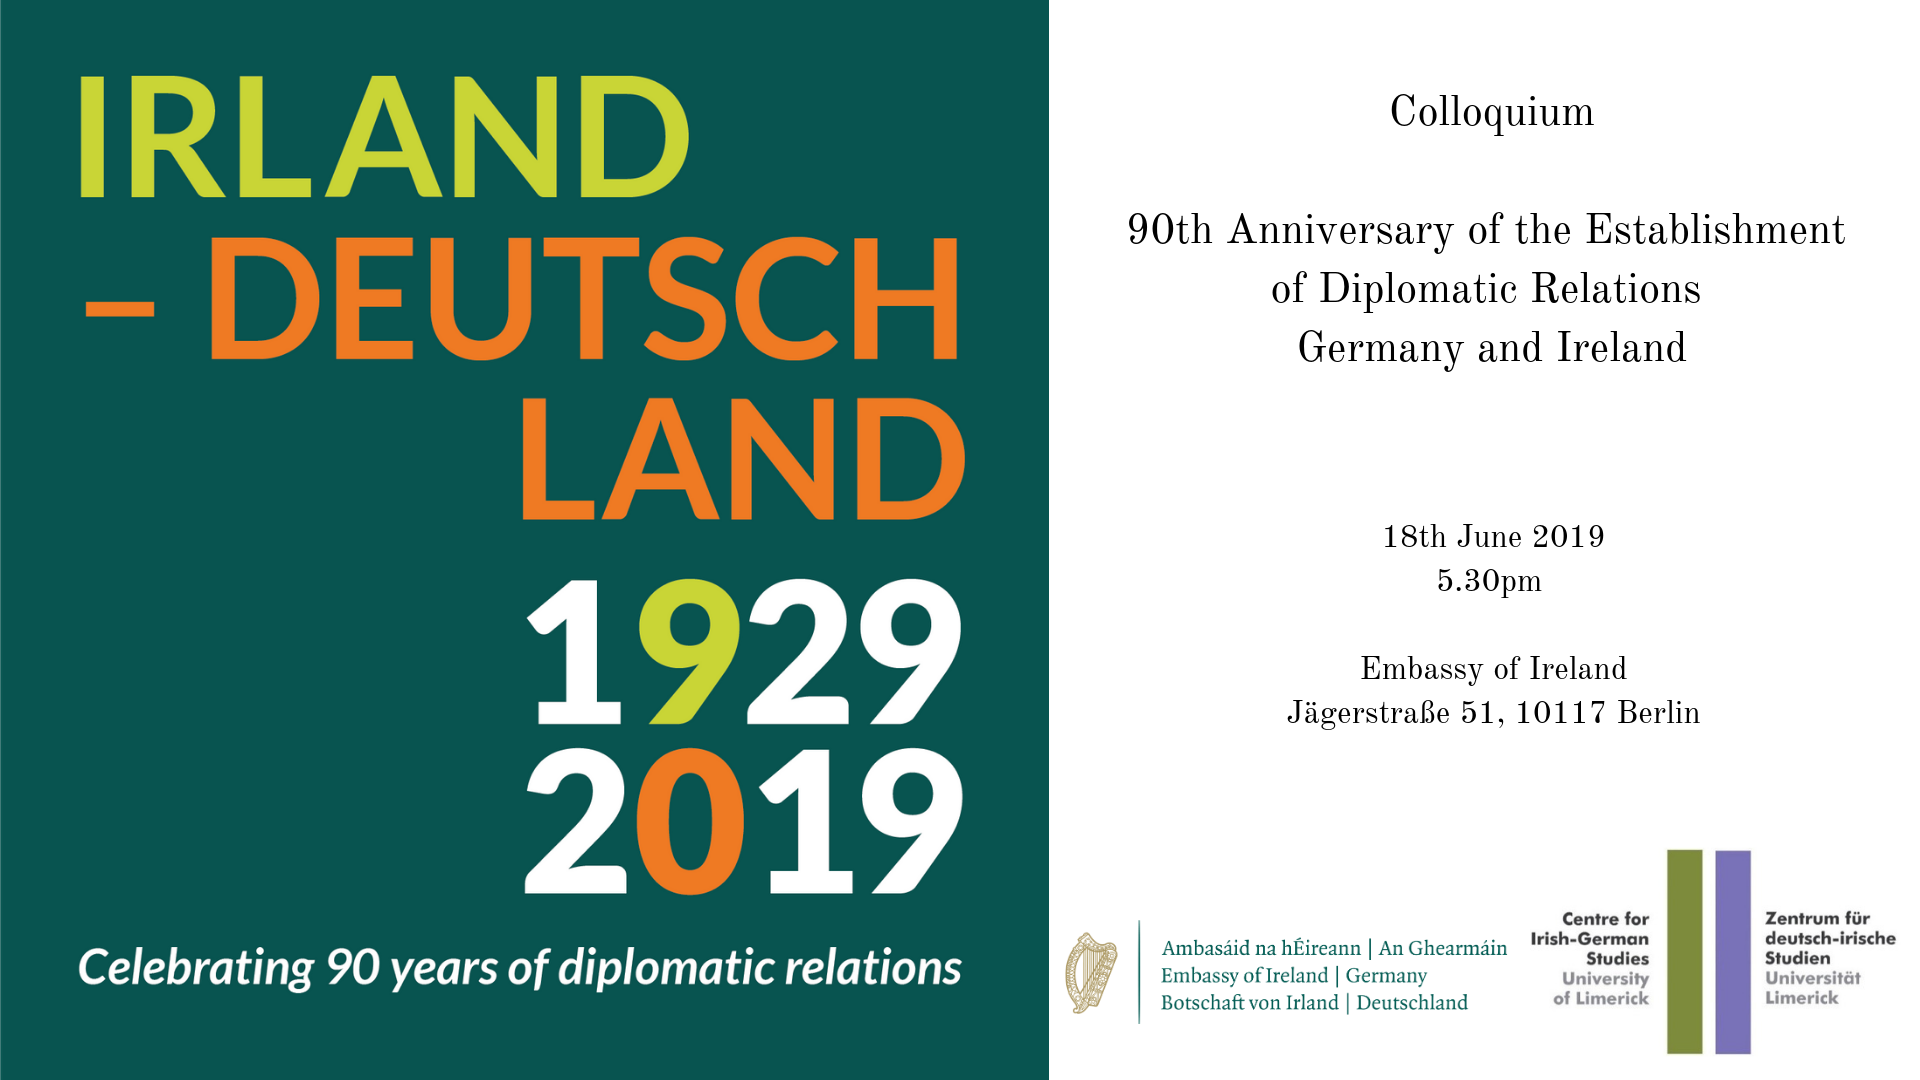 Colloquium     90th Anniversary of the Establishment of Diplomatic Relations Germany and Ireland